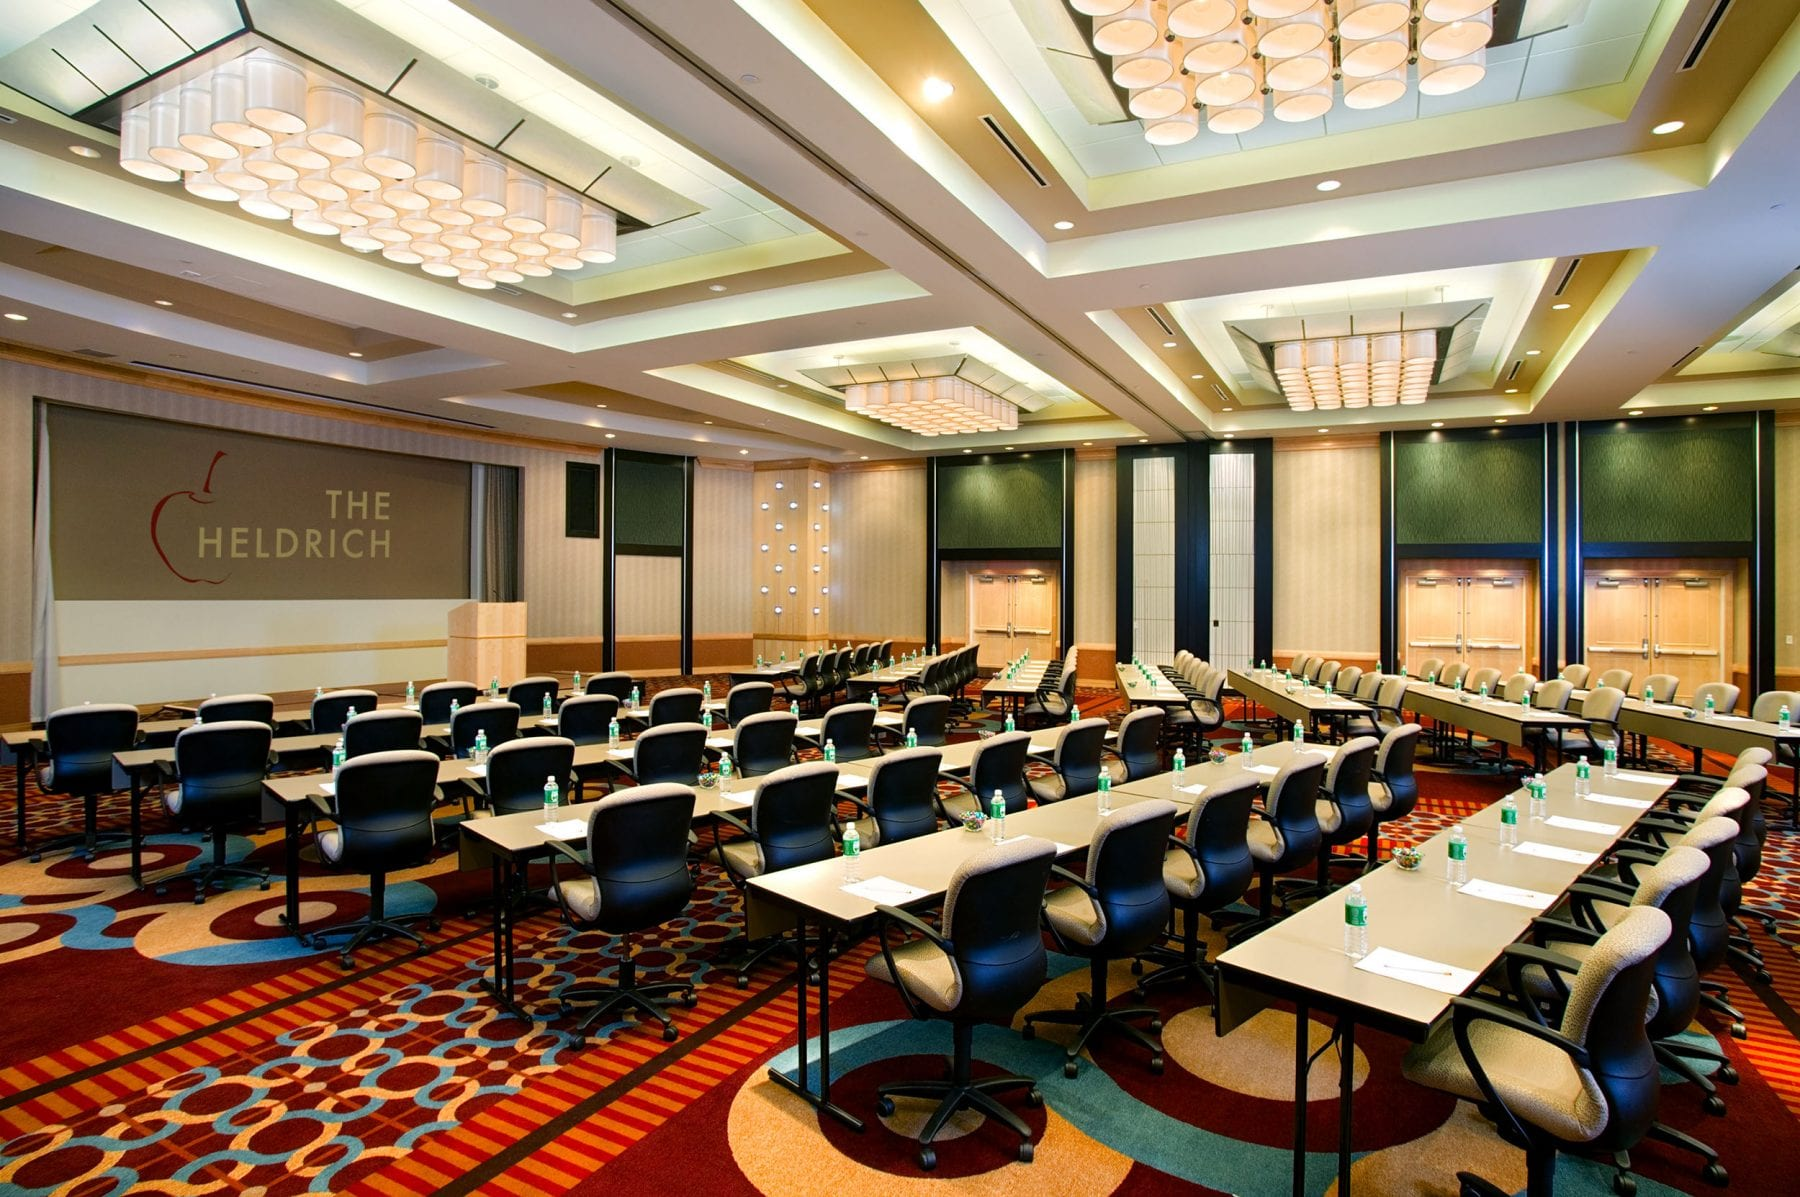 Heldrich Hotel & Conference Center, The